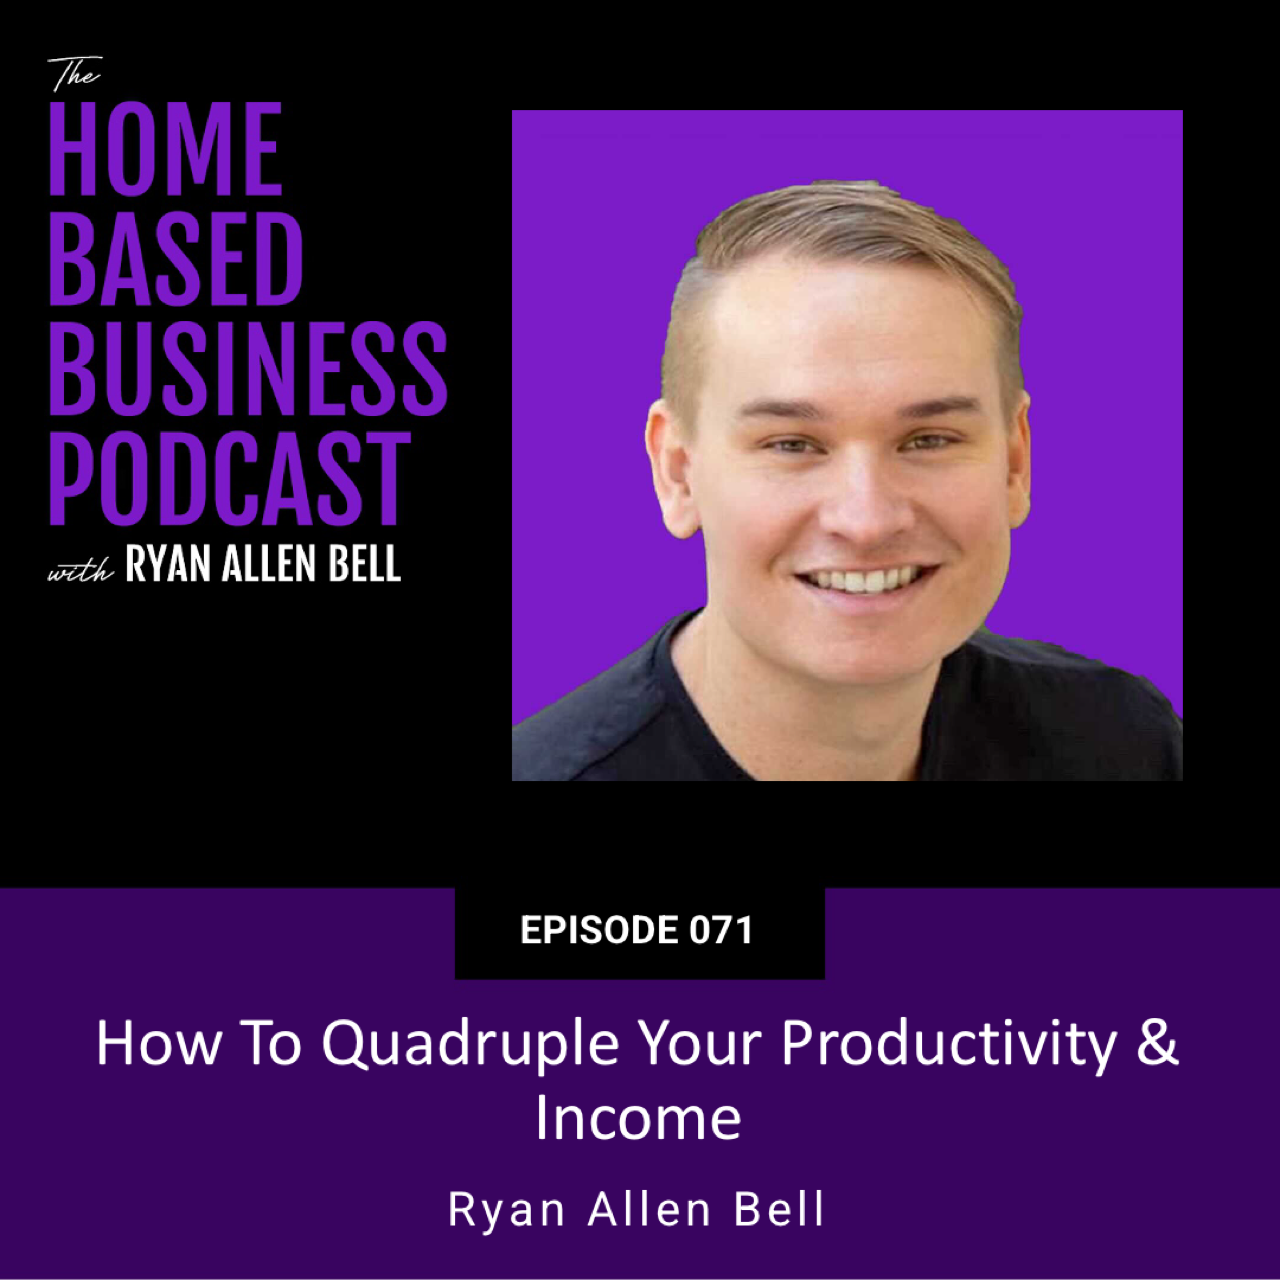 How to quadruple your productivity & income